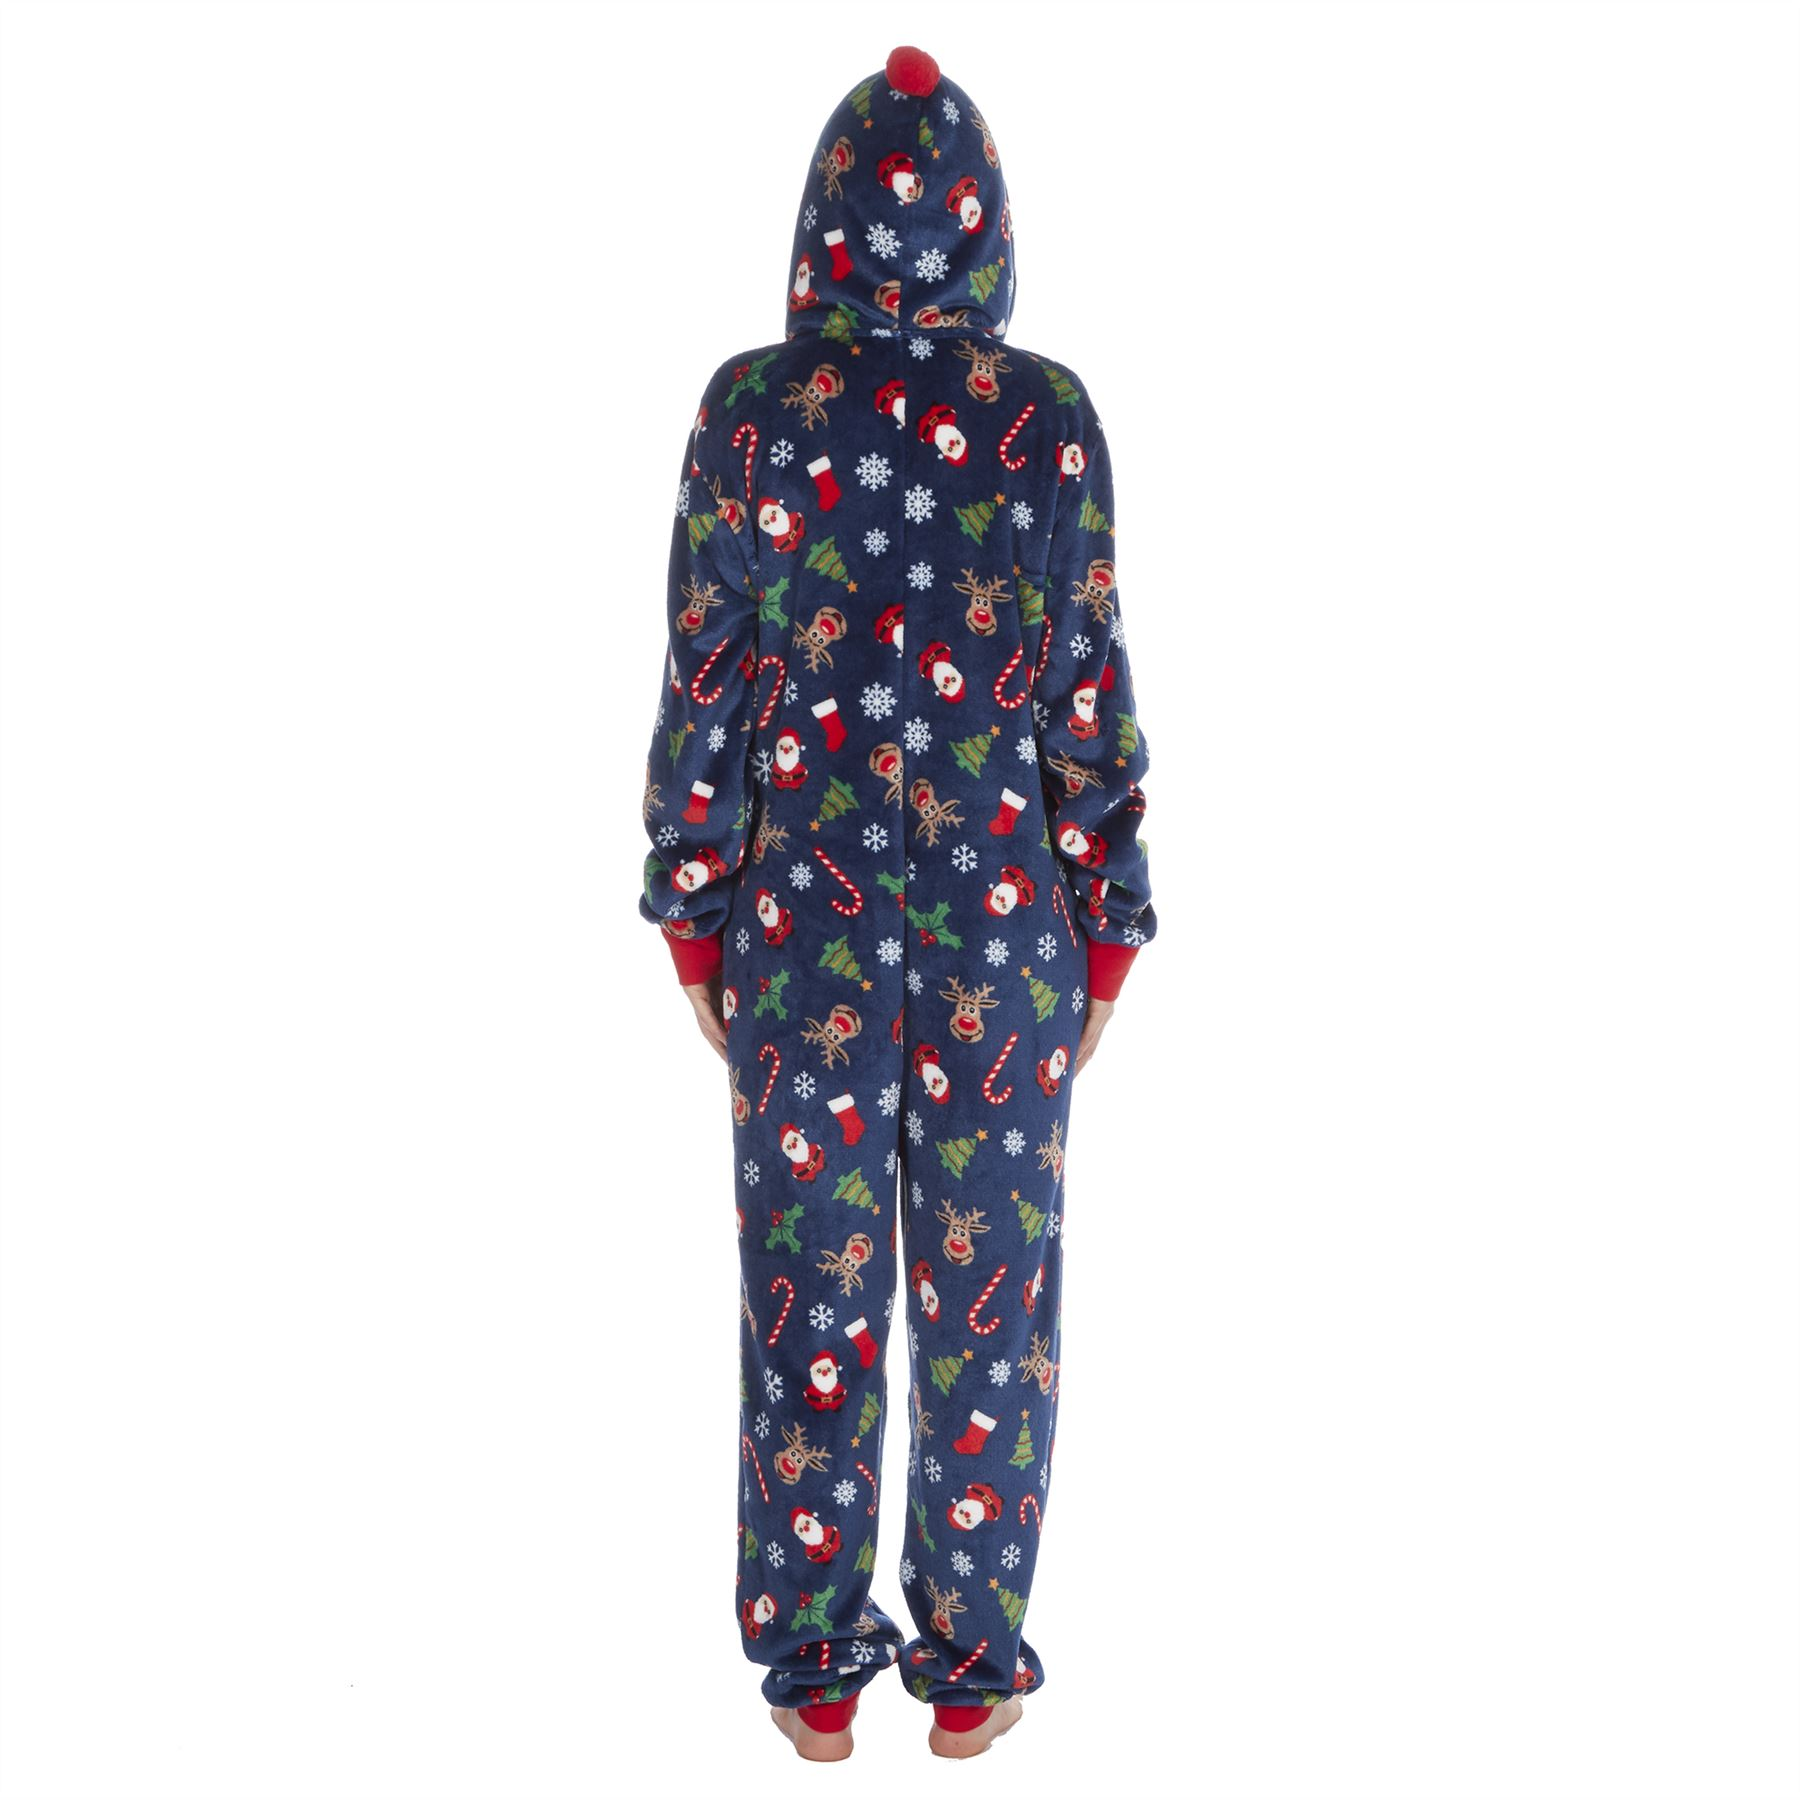 Ladies-Womens-Girls-Fleece-All-In-One-Pyjamas-Outfit-Jumpsuit-Costume-Size-6-18 thumbnail 49